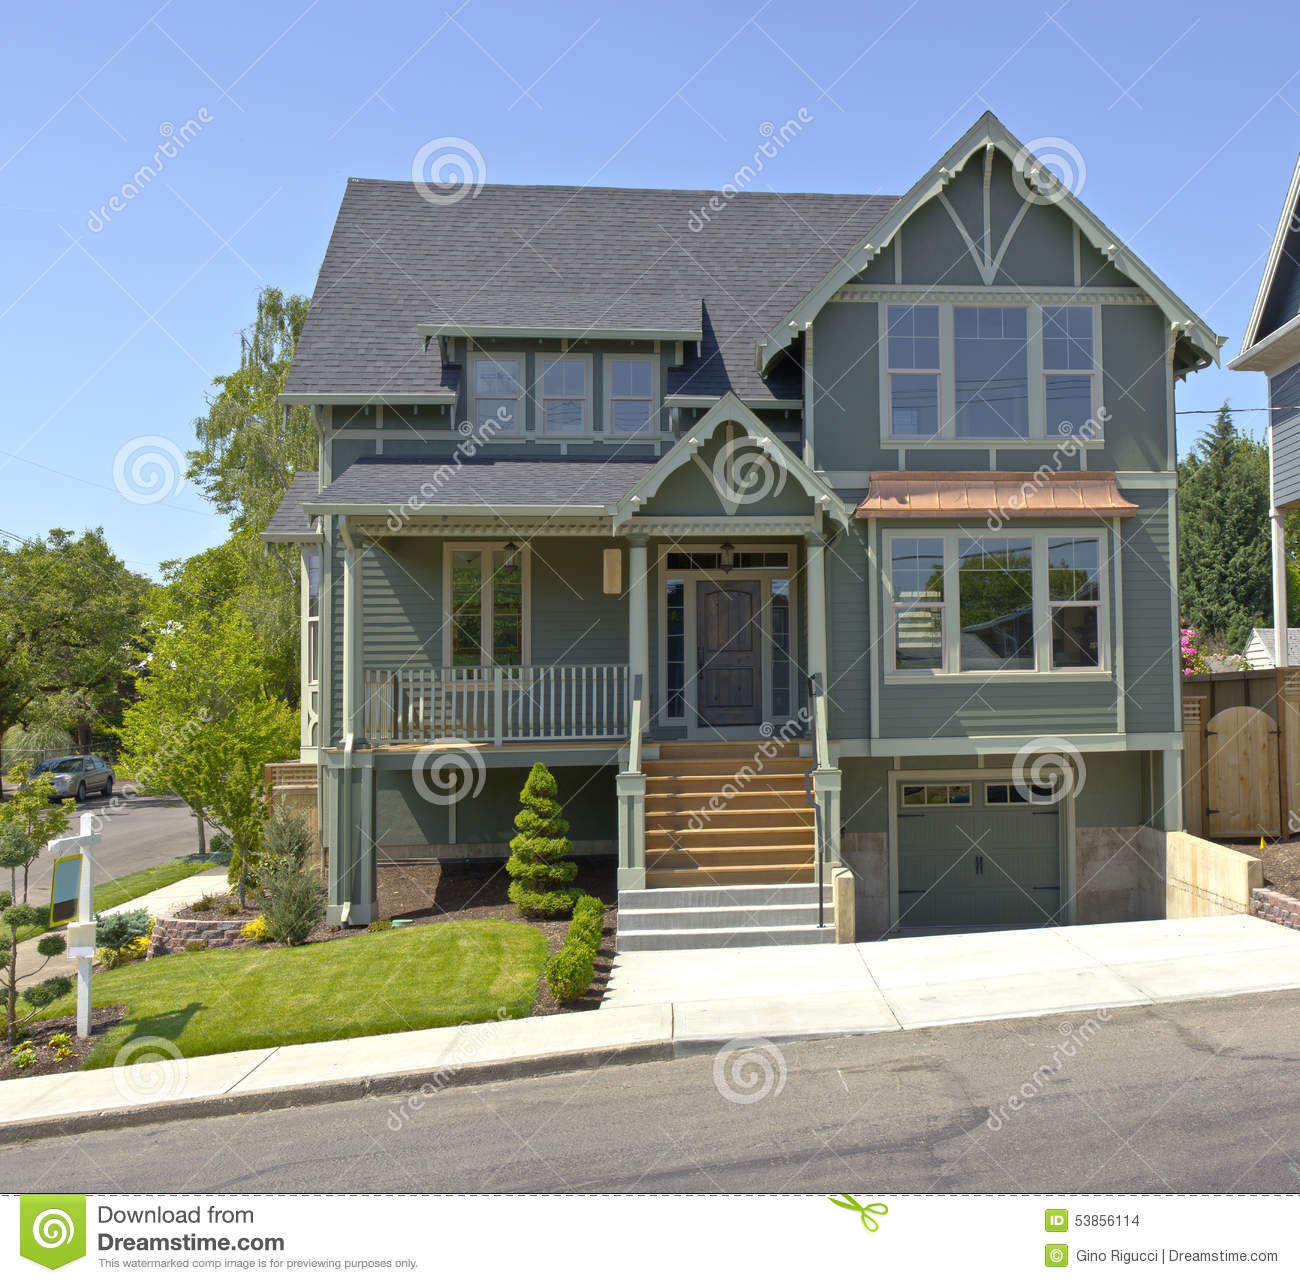 Nouvelle maison vendre portland or gon photo stock for Achat nouvelle maison